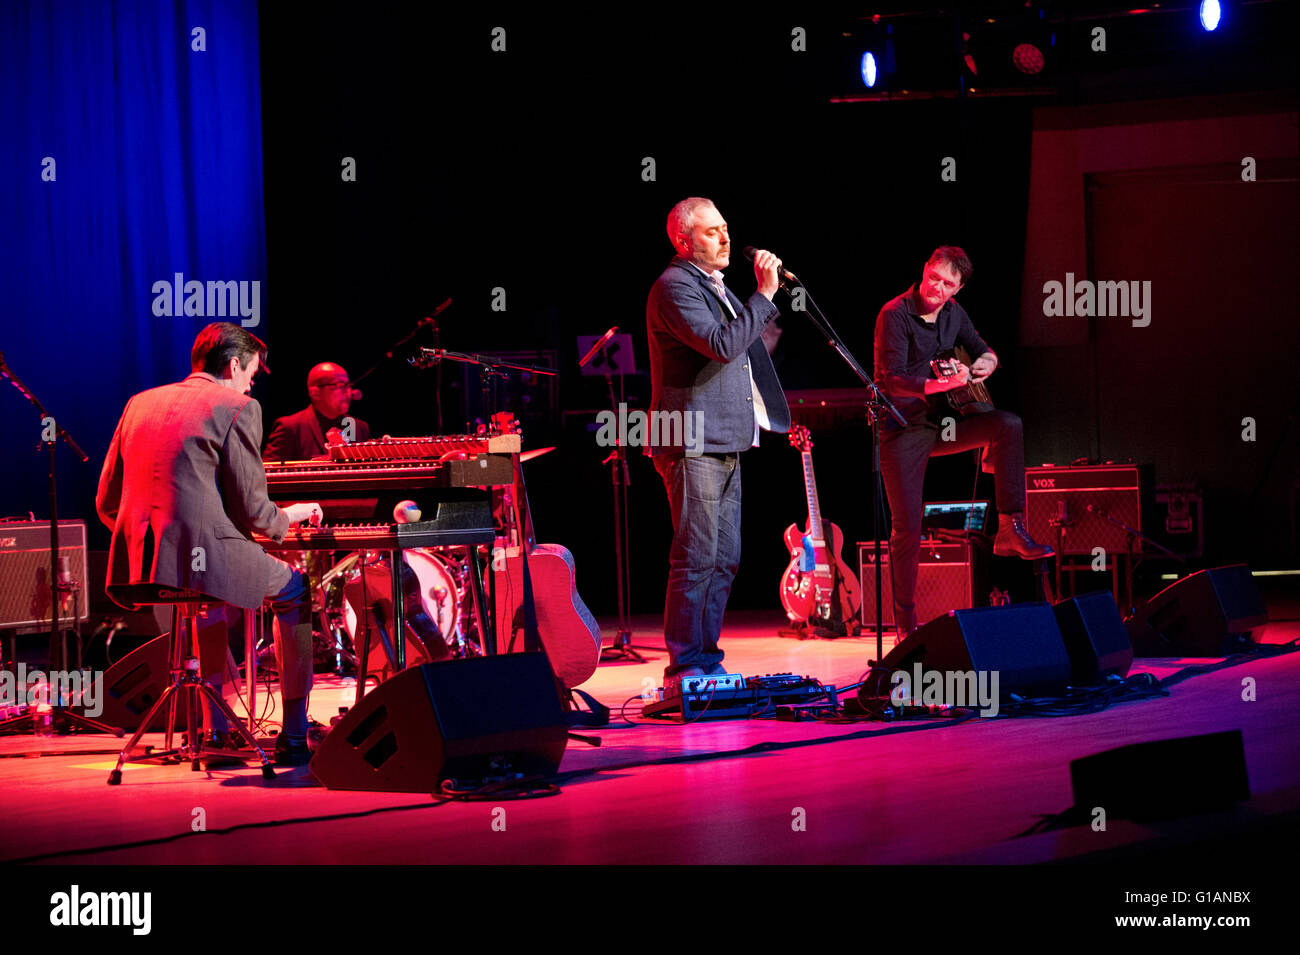 Tindersticks, with lead singer Stuart A Staples in concert at The Bridgewater Hall, Manchester, 2nd May 2016 - Stock Image